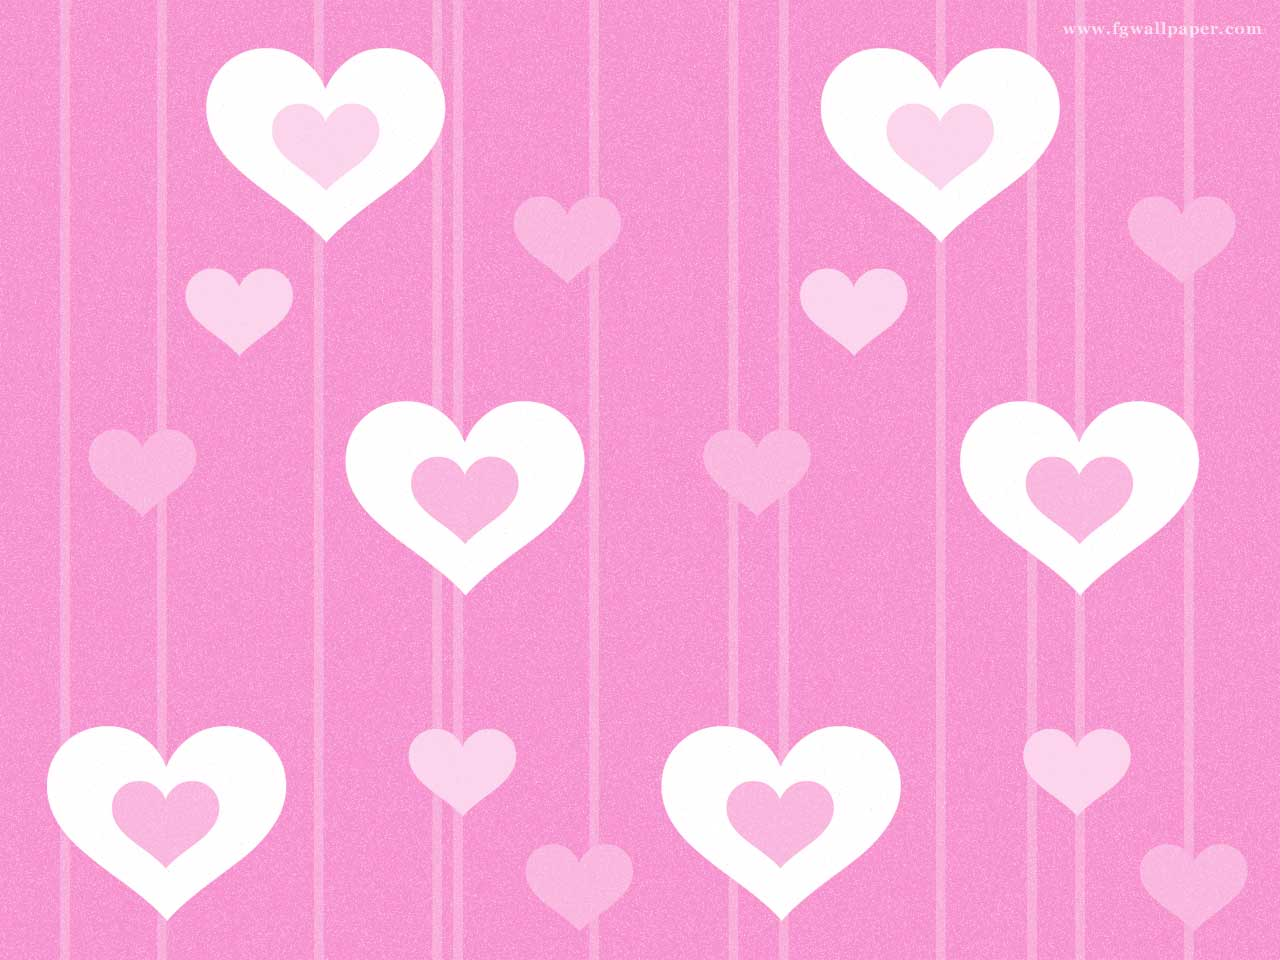 love pink wallpaper - photo #13